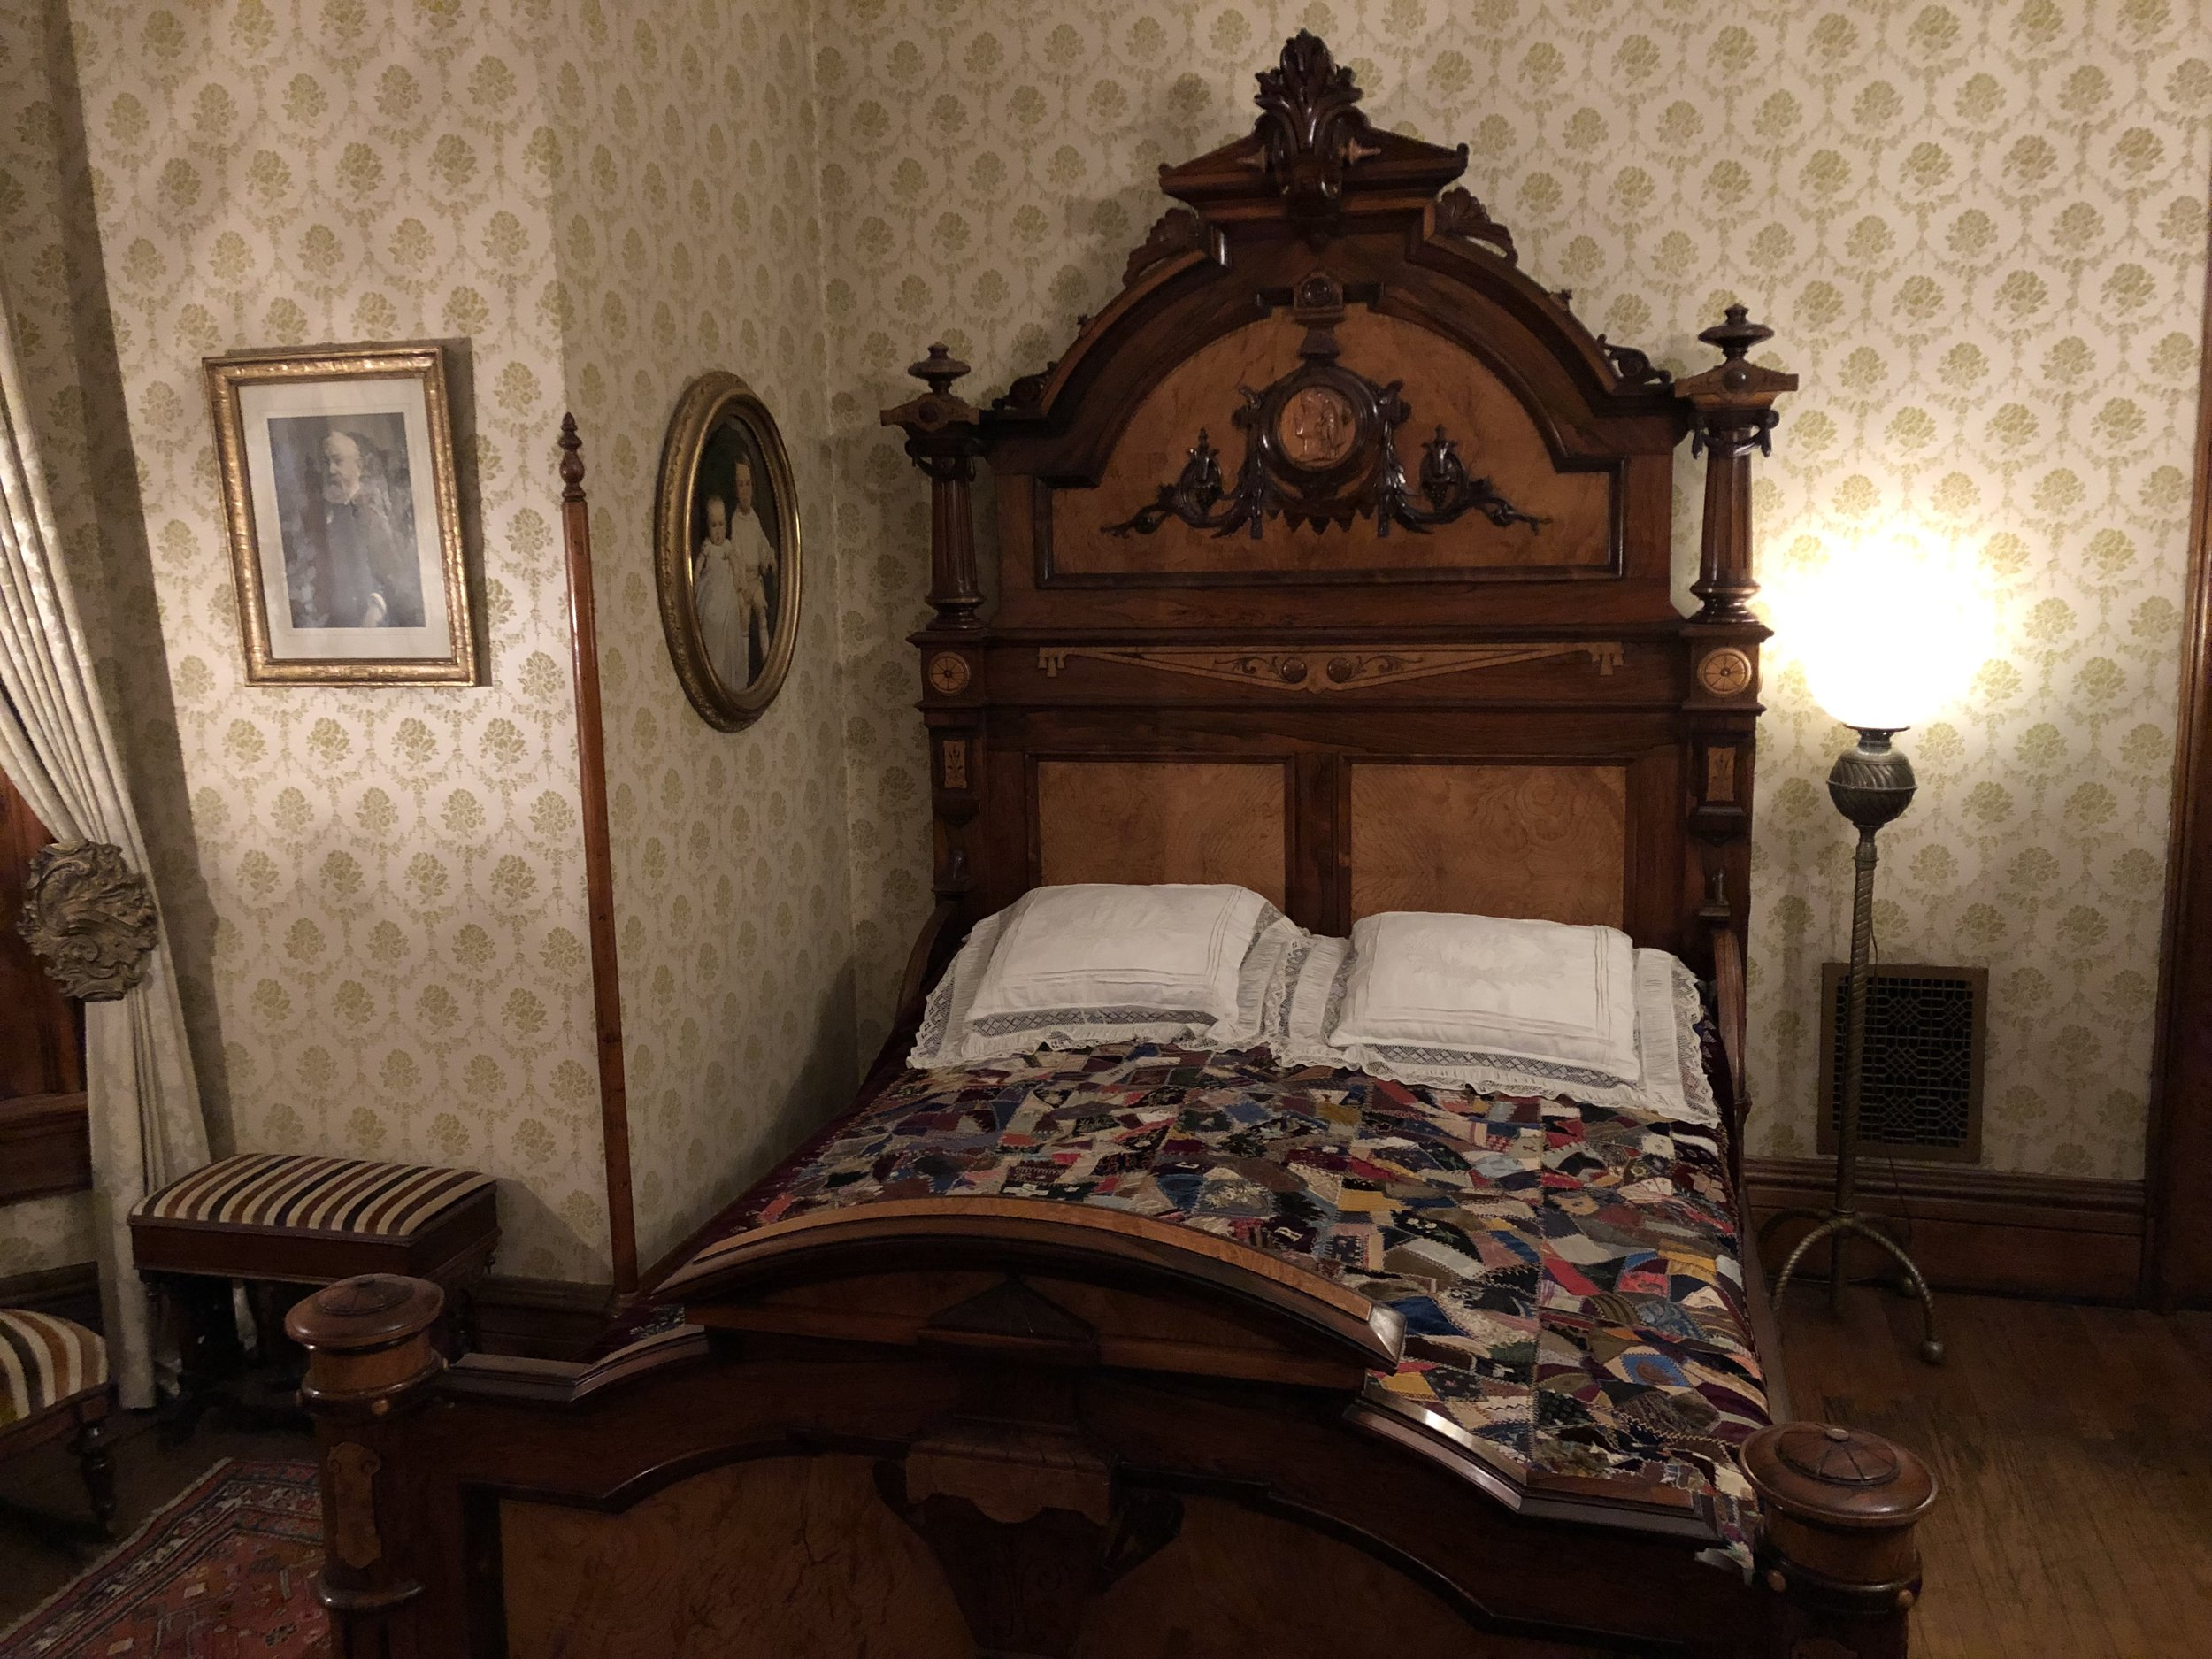 "Harrison's home is another hidden treasure. The majority of the items in the house belonged to the Harrison family. This is the bed where both he and his first wife Caroline died. The guide said that Caroline died while Harrison was running for reelection in 1892. After she died, he suspended his campaign. Remarkably, his opponent Grover Cleveland suspended his campaign as well to show his respect for the First Lady. One of those ""oh for the good old days"" moments."